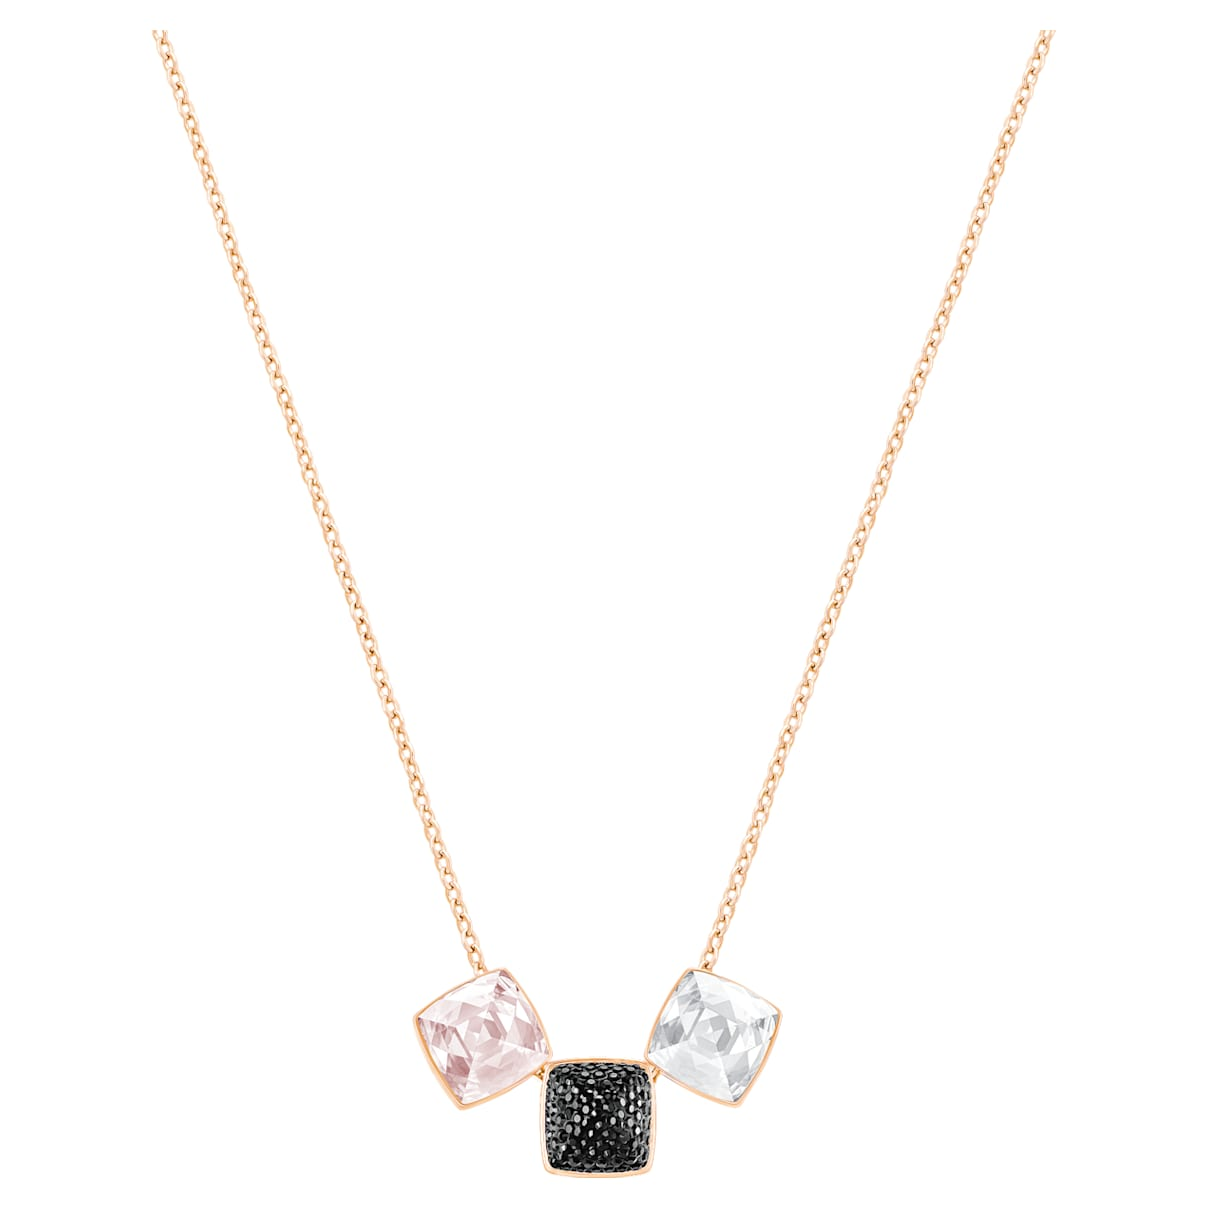 Glance Necklace, Light multi-colored, Rose-gold tone plated